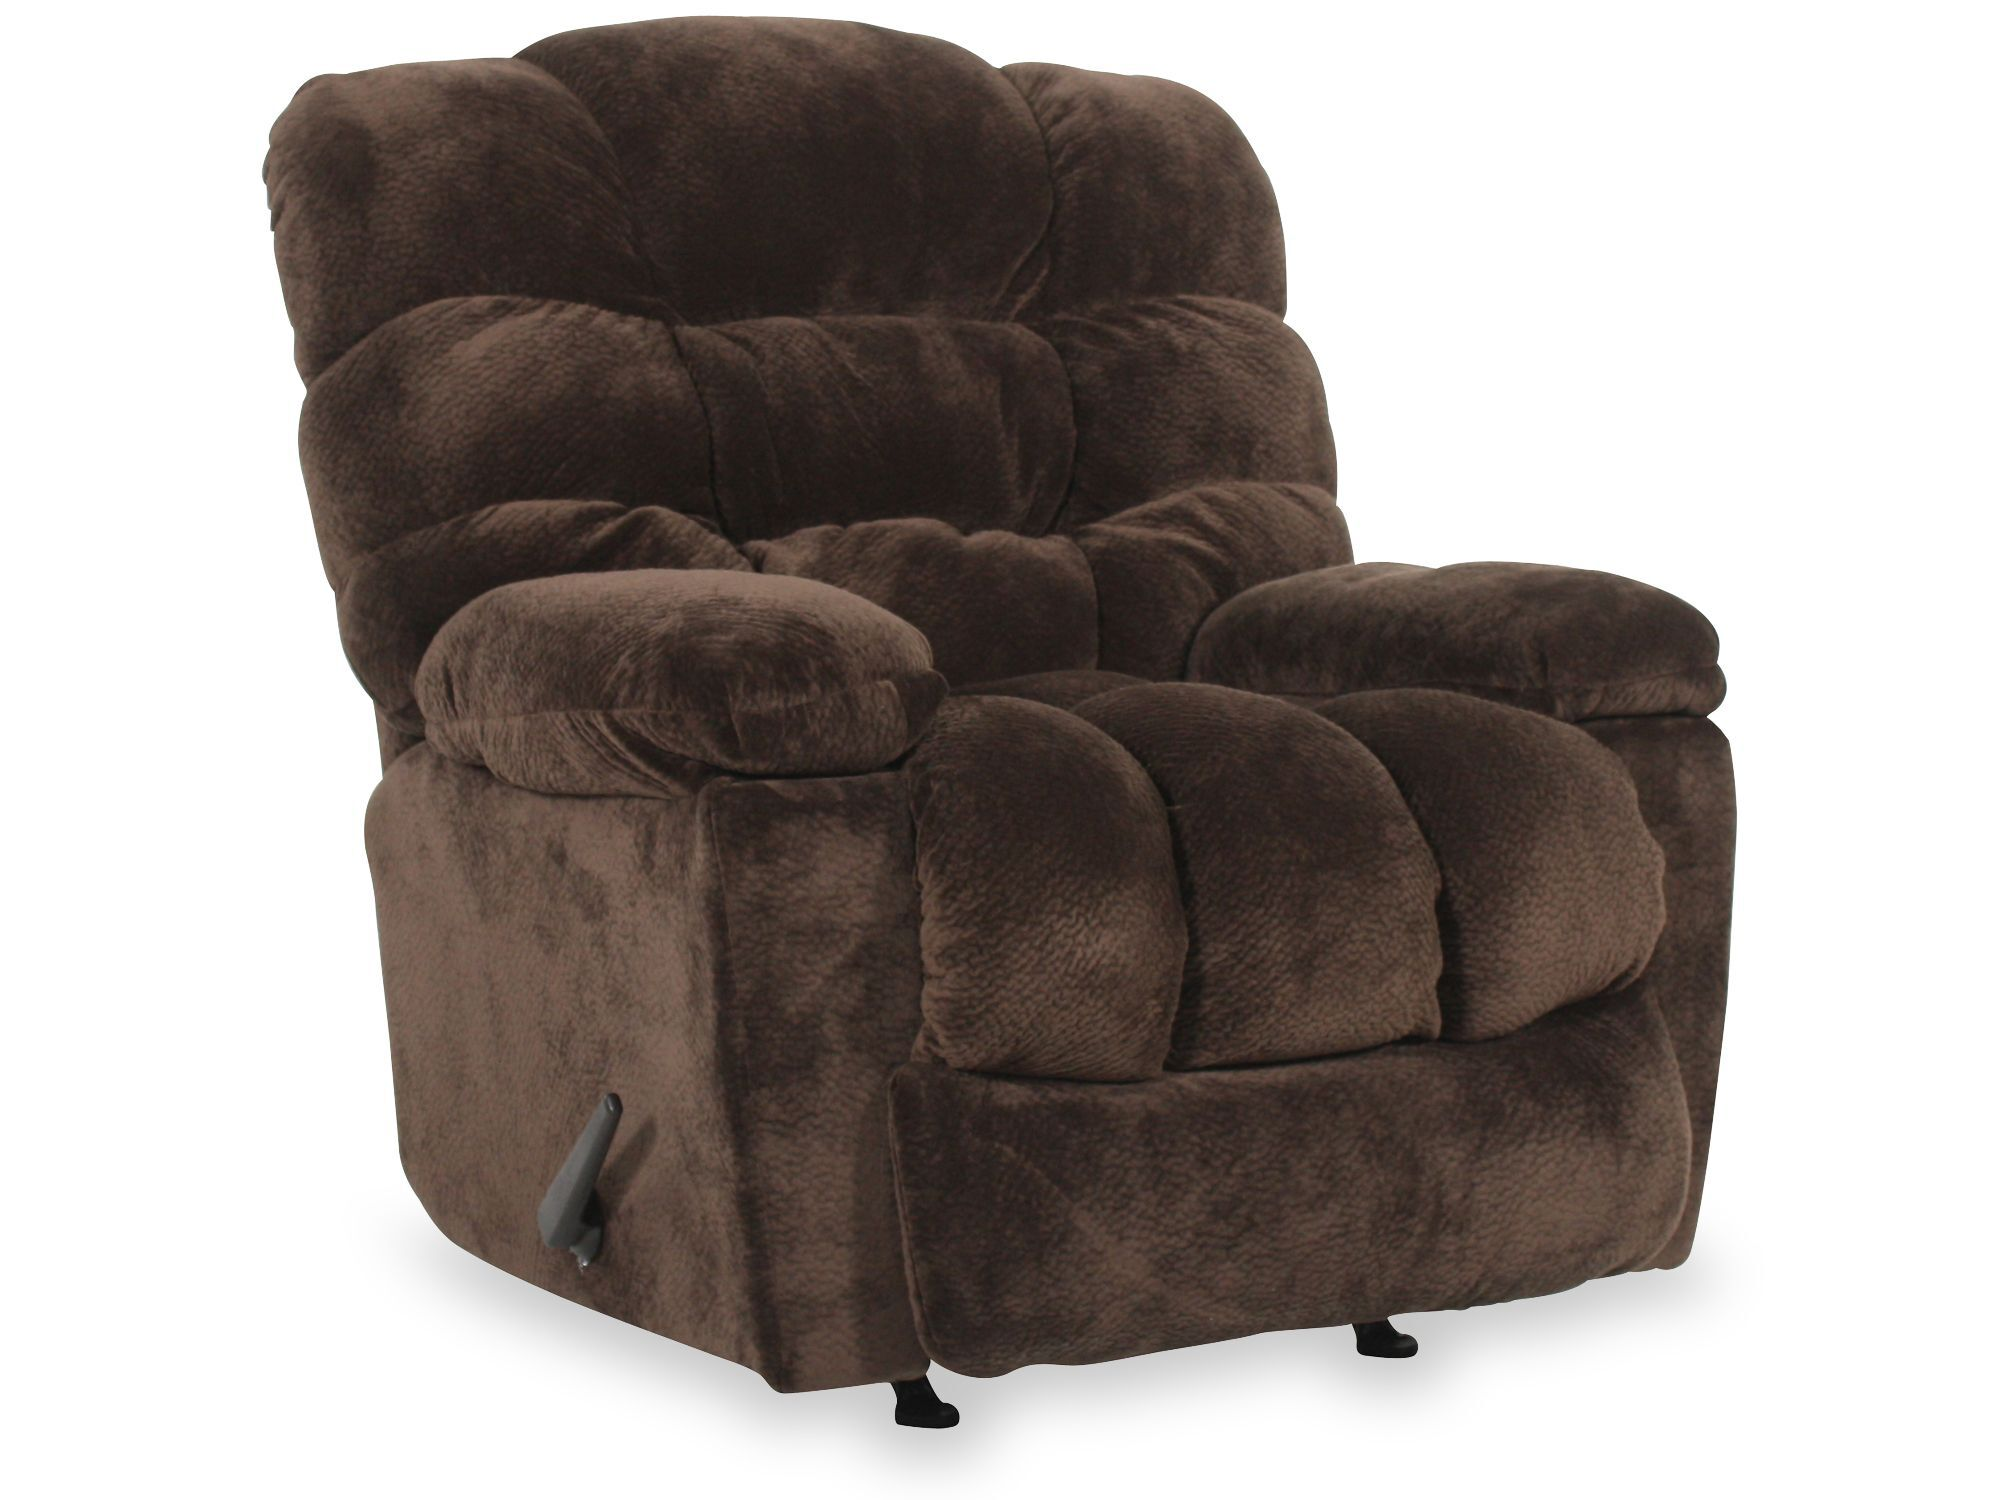 Lane Lucas Chocolate Wall Saver Recliner ...  sc 1 st  Mathis Brothers & Lane Lucas Chocolate Wall Saver Recliner with Storage Arm | Mathis ... islam-shia.org